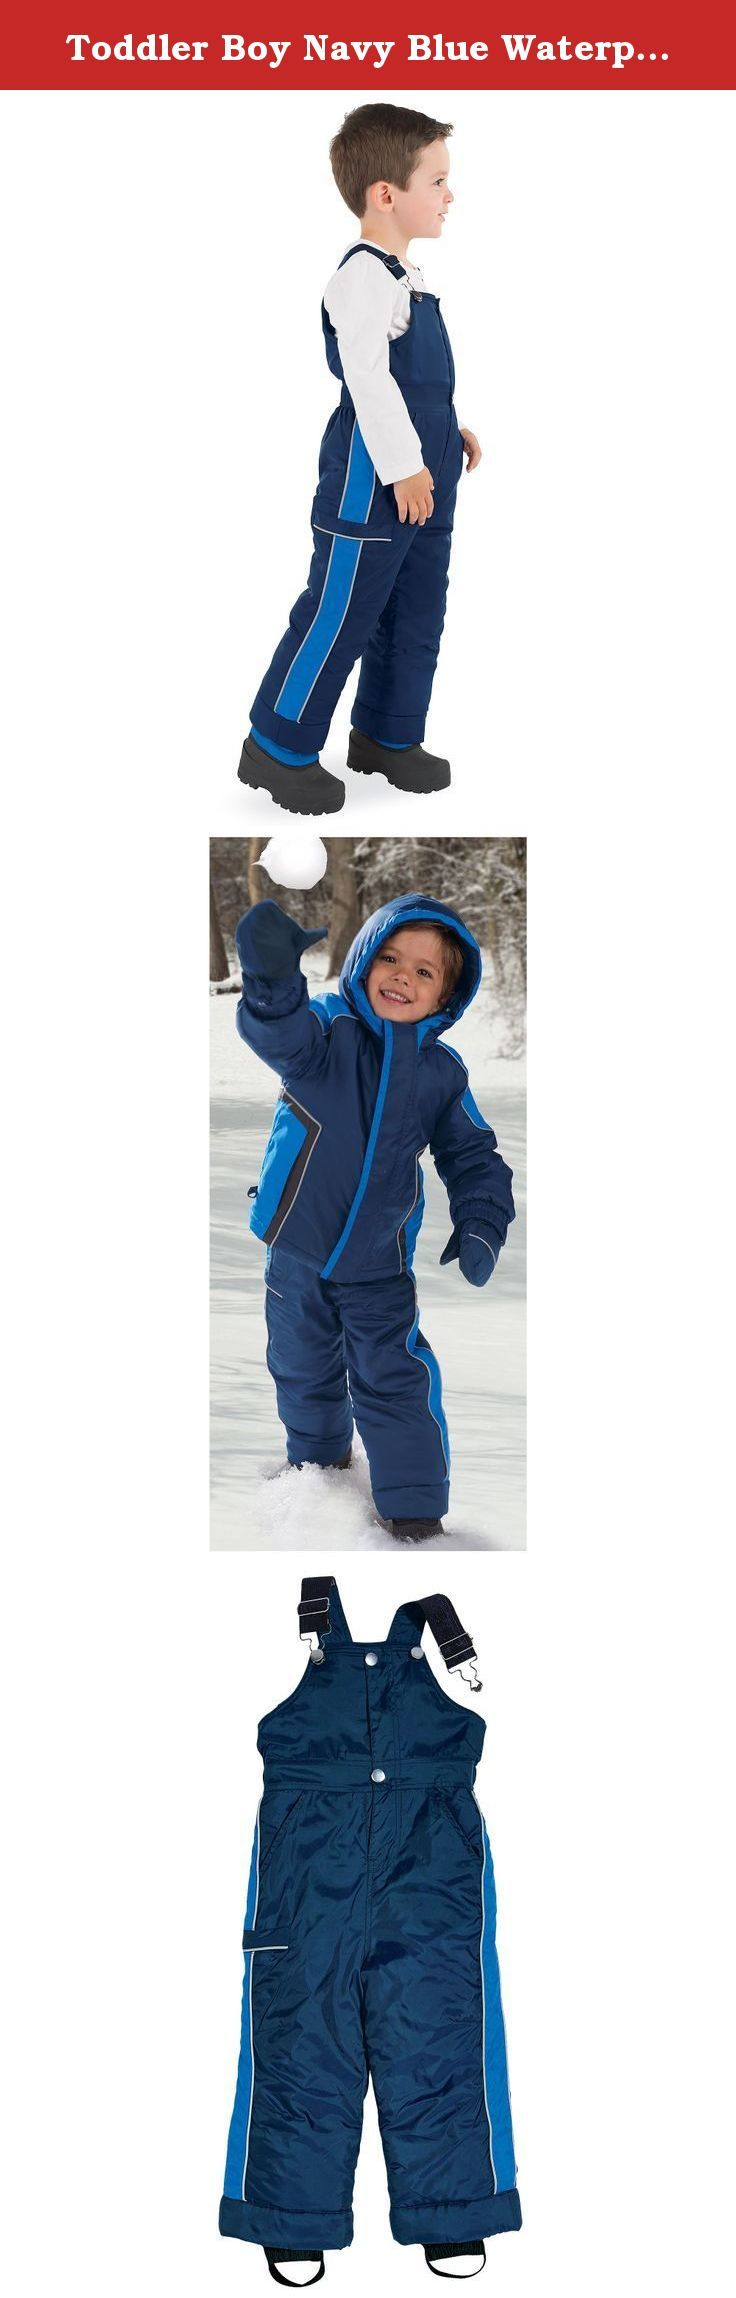 758d8b43a846 Toddler Boy Navy Blue Waterproof Thinsulate Winter Snow Pants by Co ...